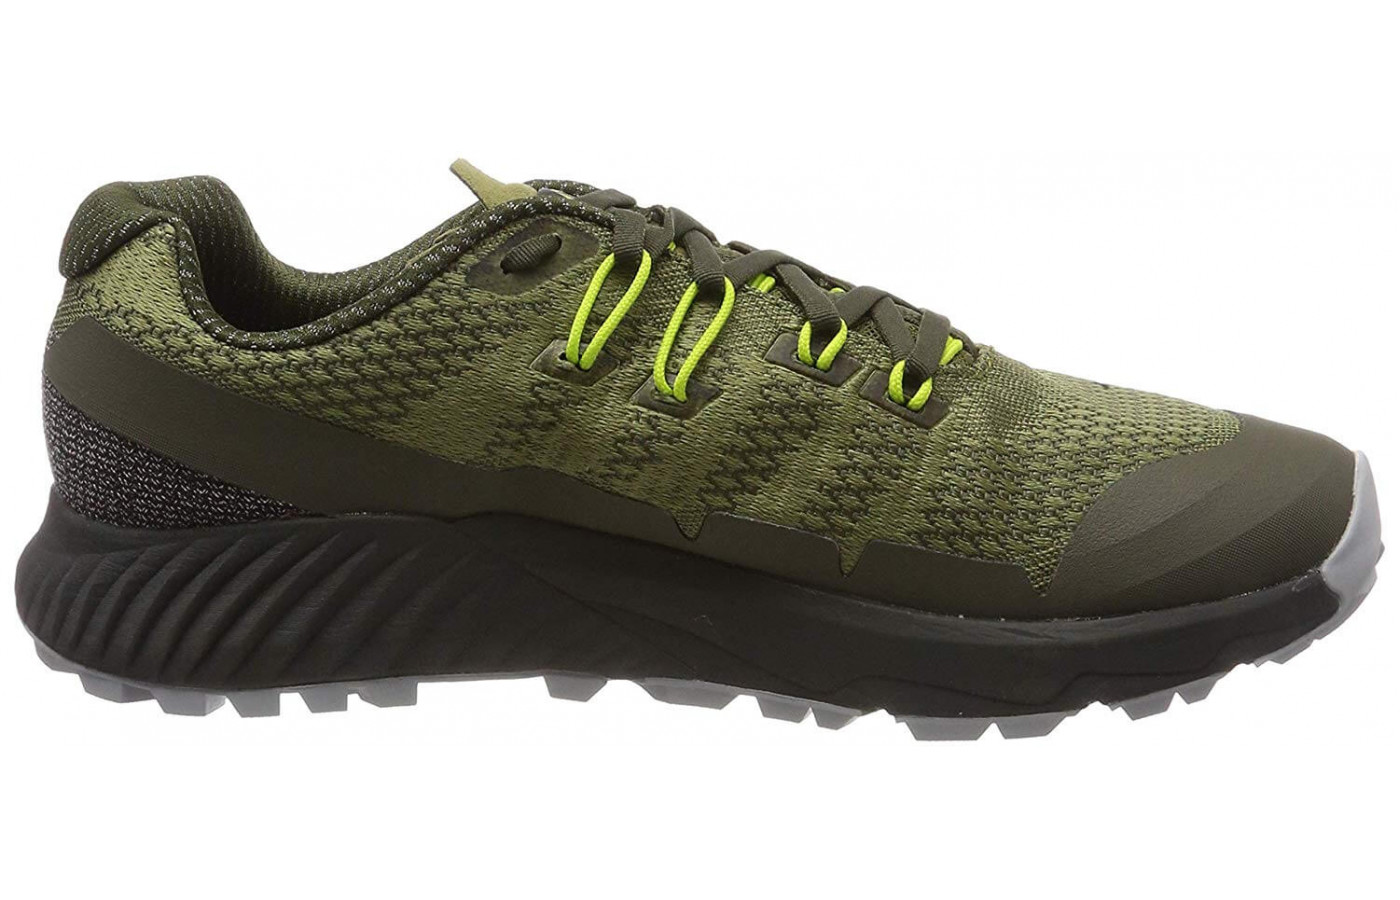 The Agility Peak Flex 3 features a compression molded EVA midsole